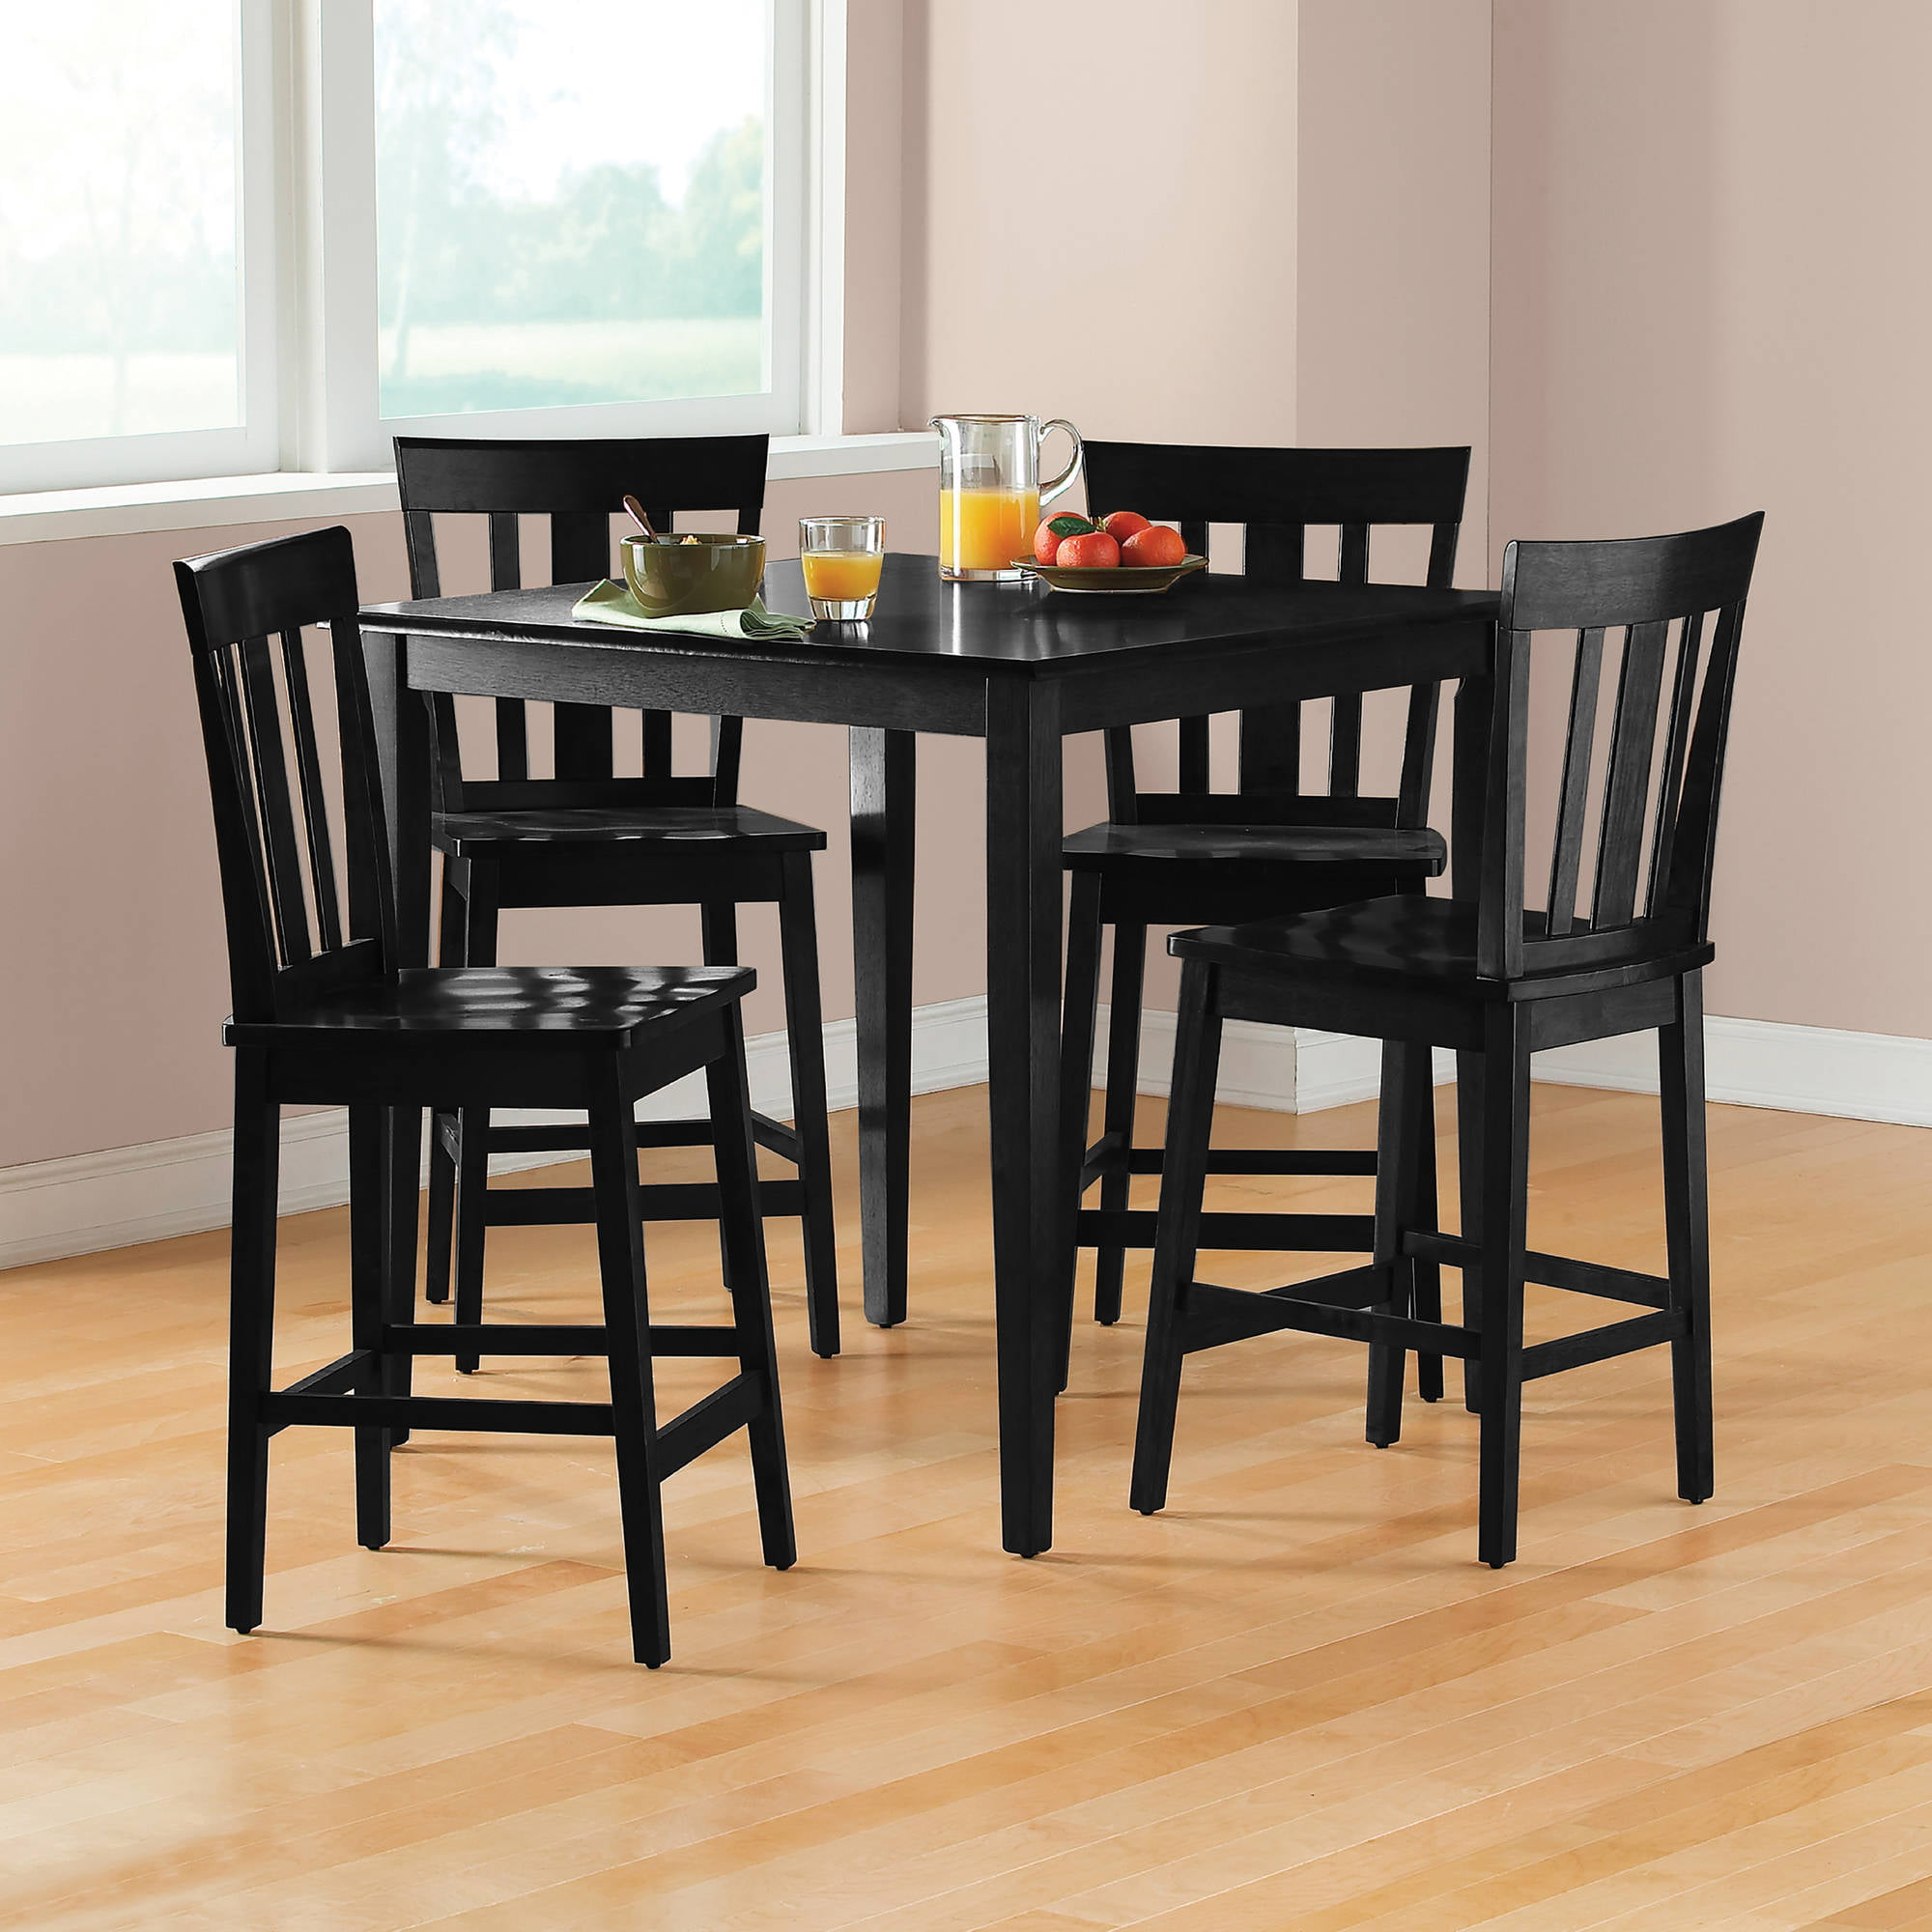 Furniture Images mainstays 5-piece counter-height dining set, black - walmart